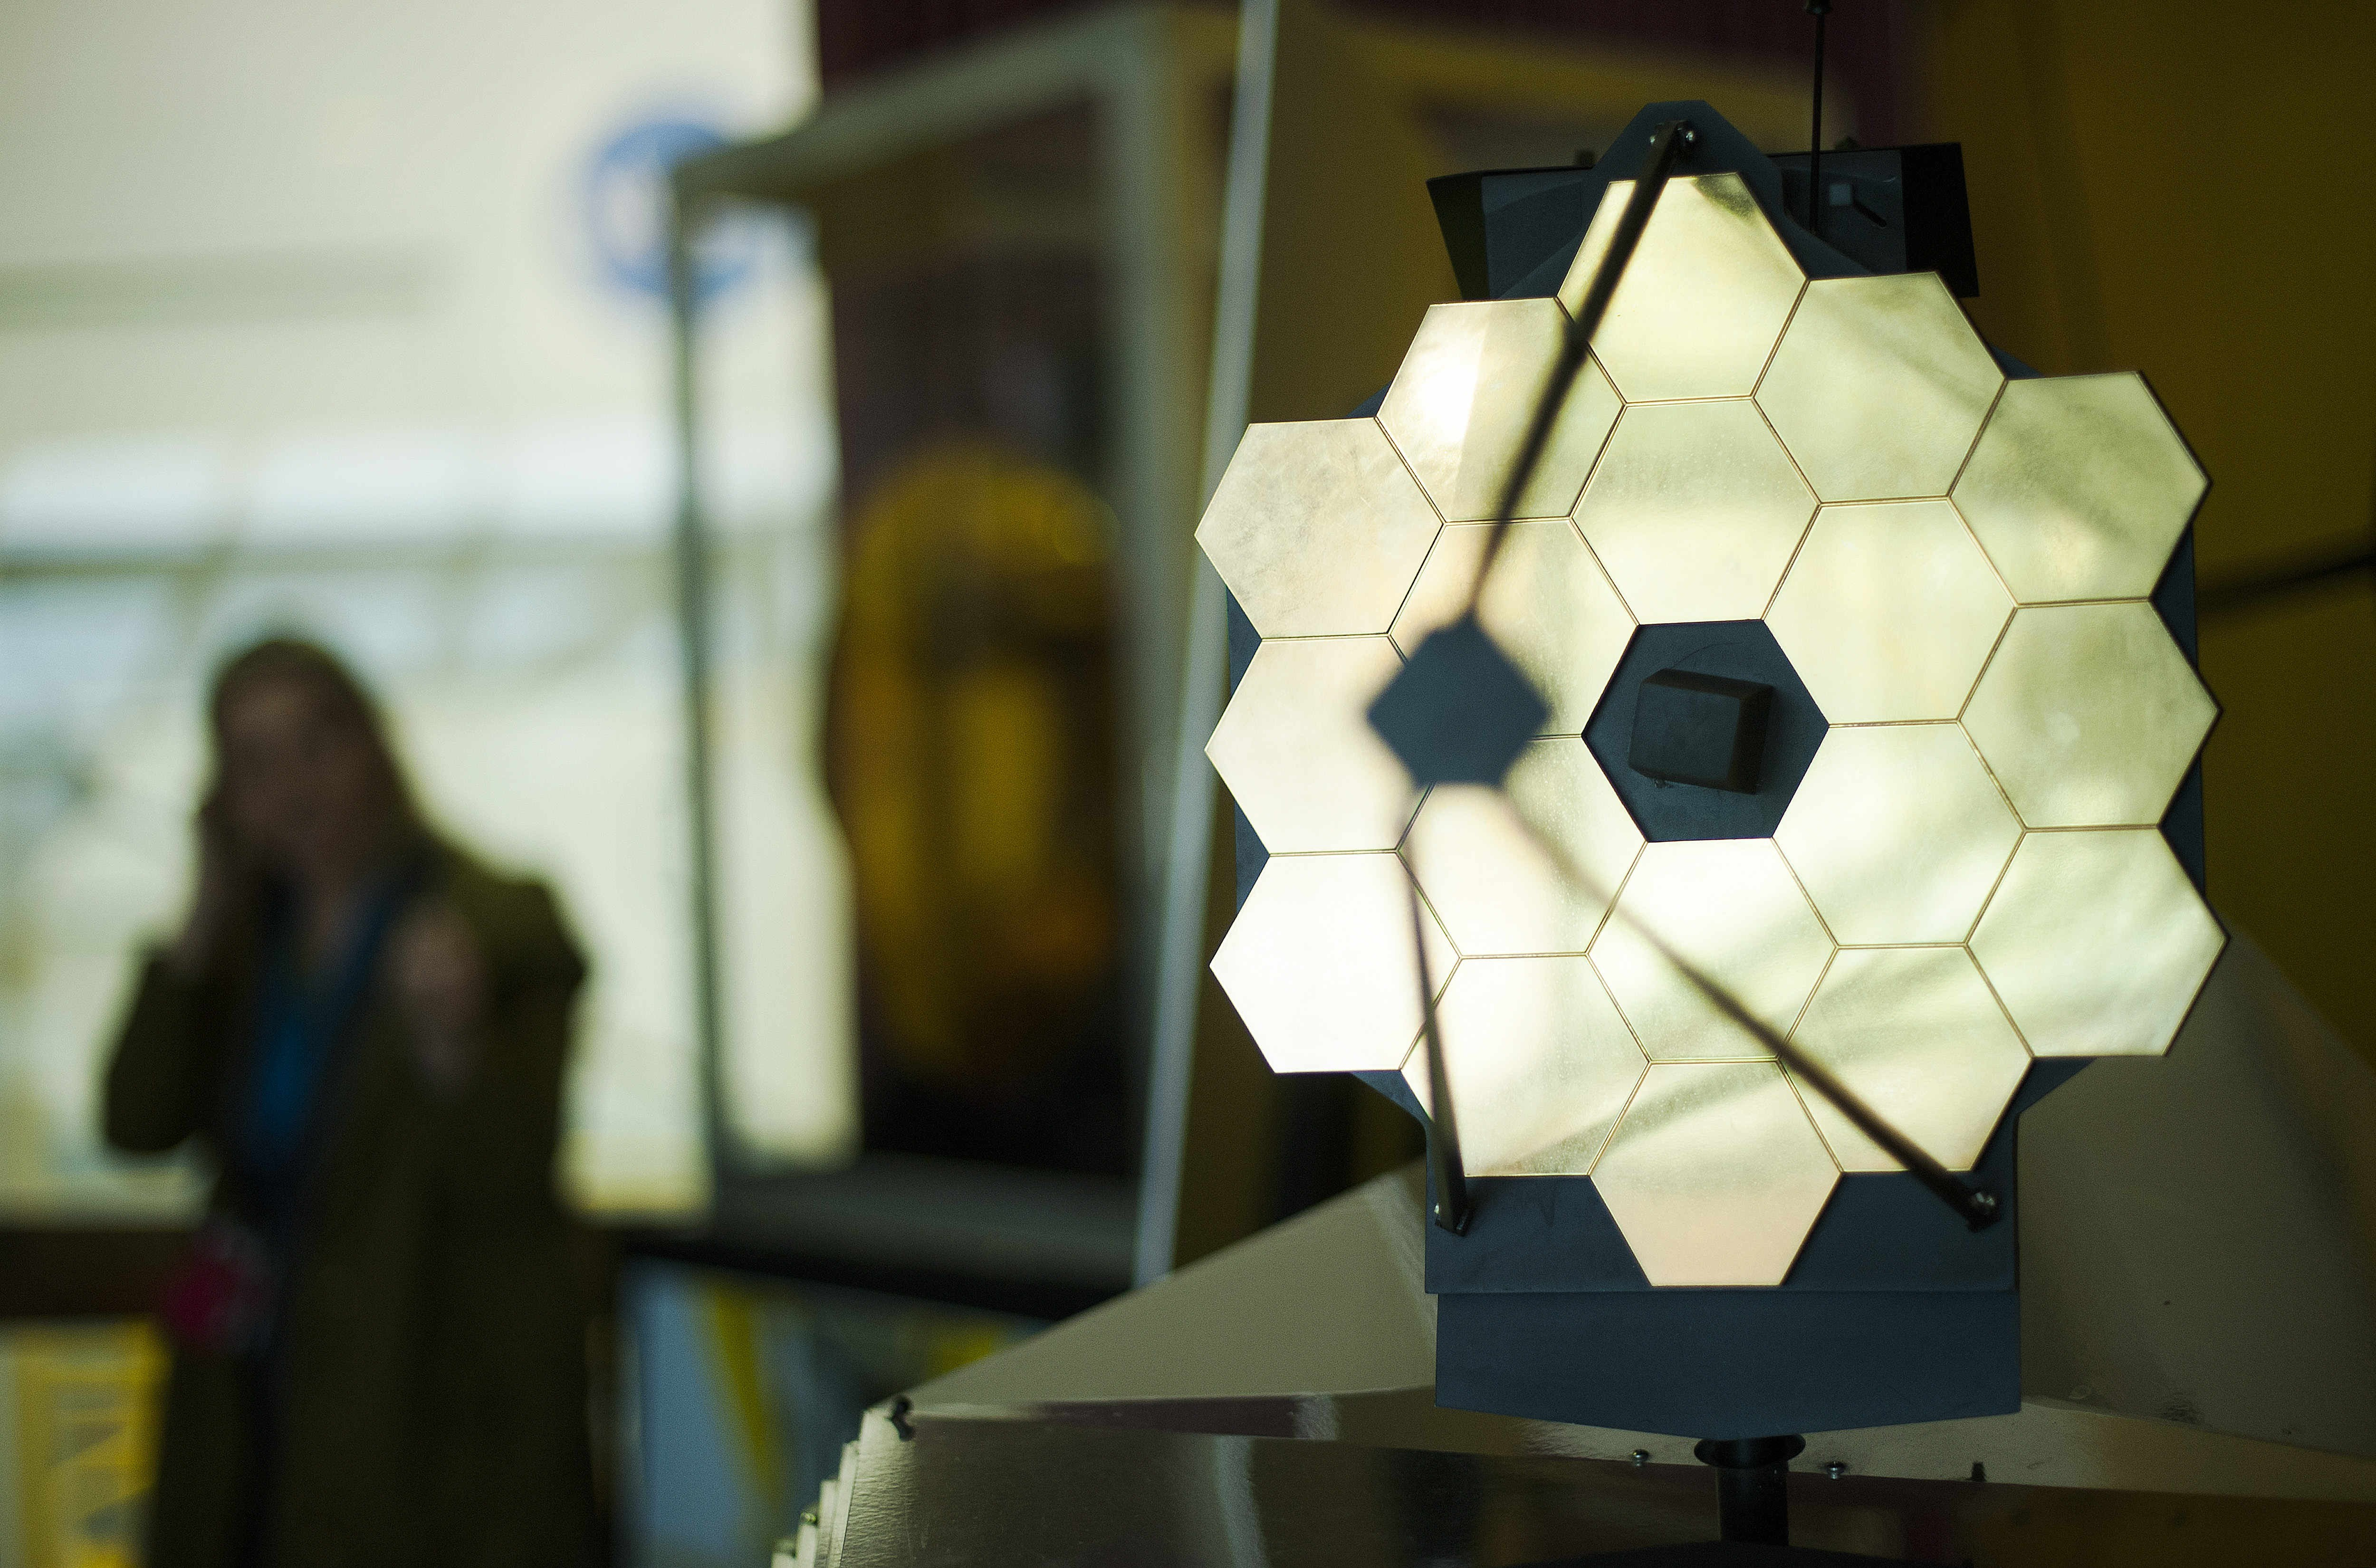 A woman stands near a model of the James Webb Space Telescope (JWST) at NASA Goddard Space Flight Center in Greenbelt, Maryland on April 2, 2015. AFP PHOTO/ JIM WATSON (Photo credit should read JIM WATSON/AFP/Getty Images)